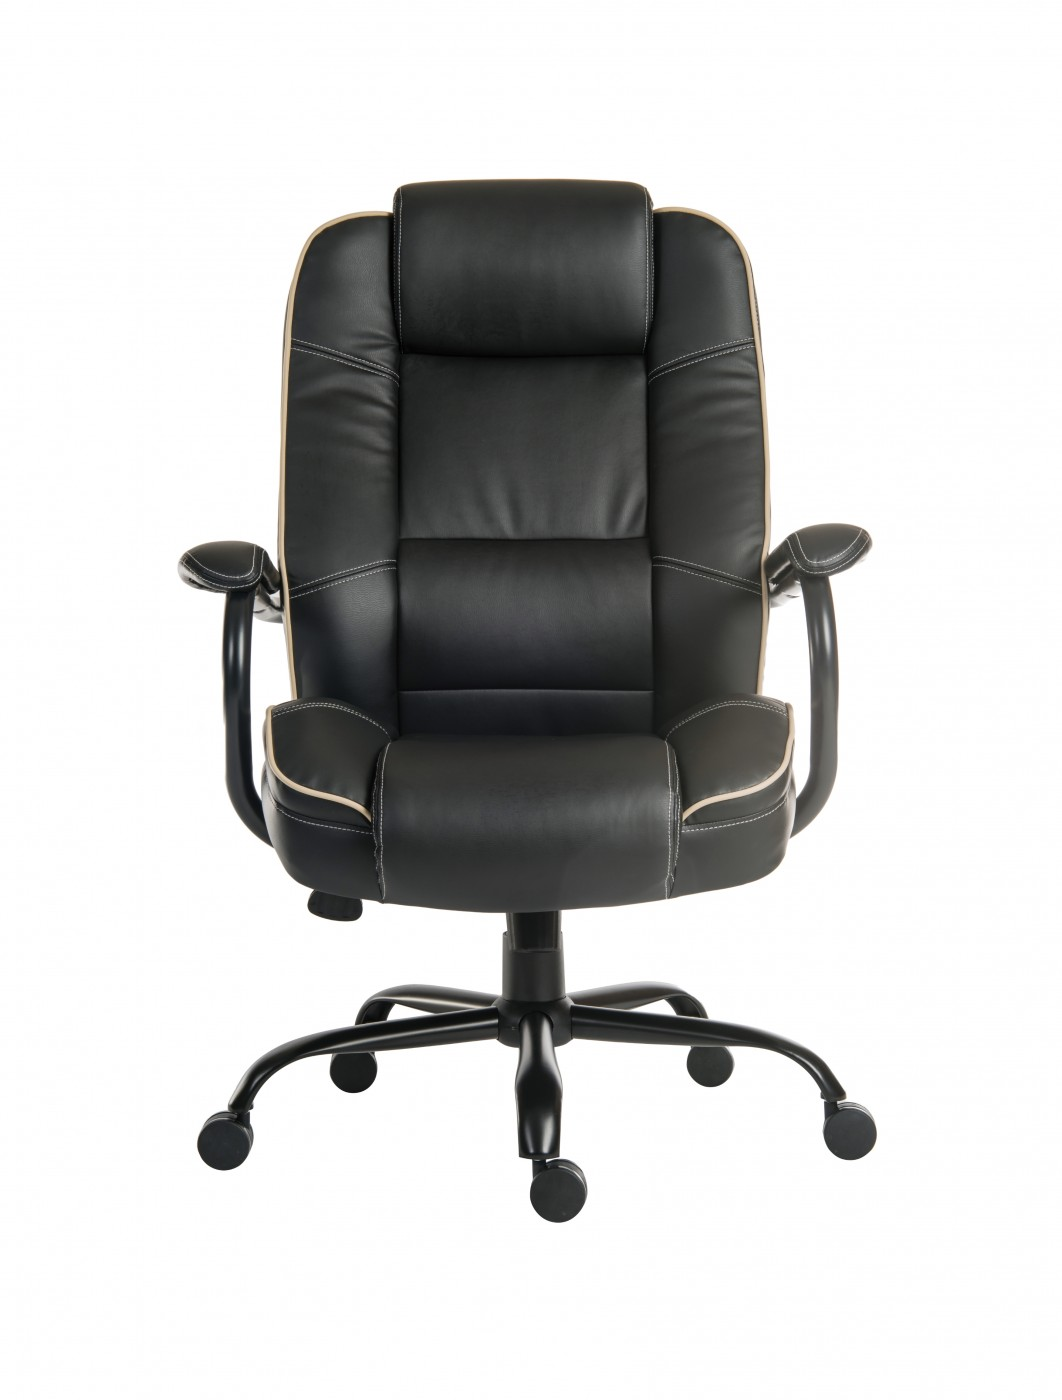 Heavy Duty Office Chair Teknik Goliath Duo Heavy Duty Office Chair 6925blk 121